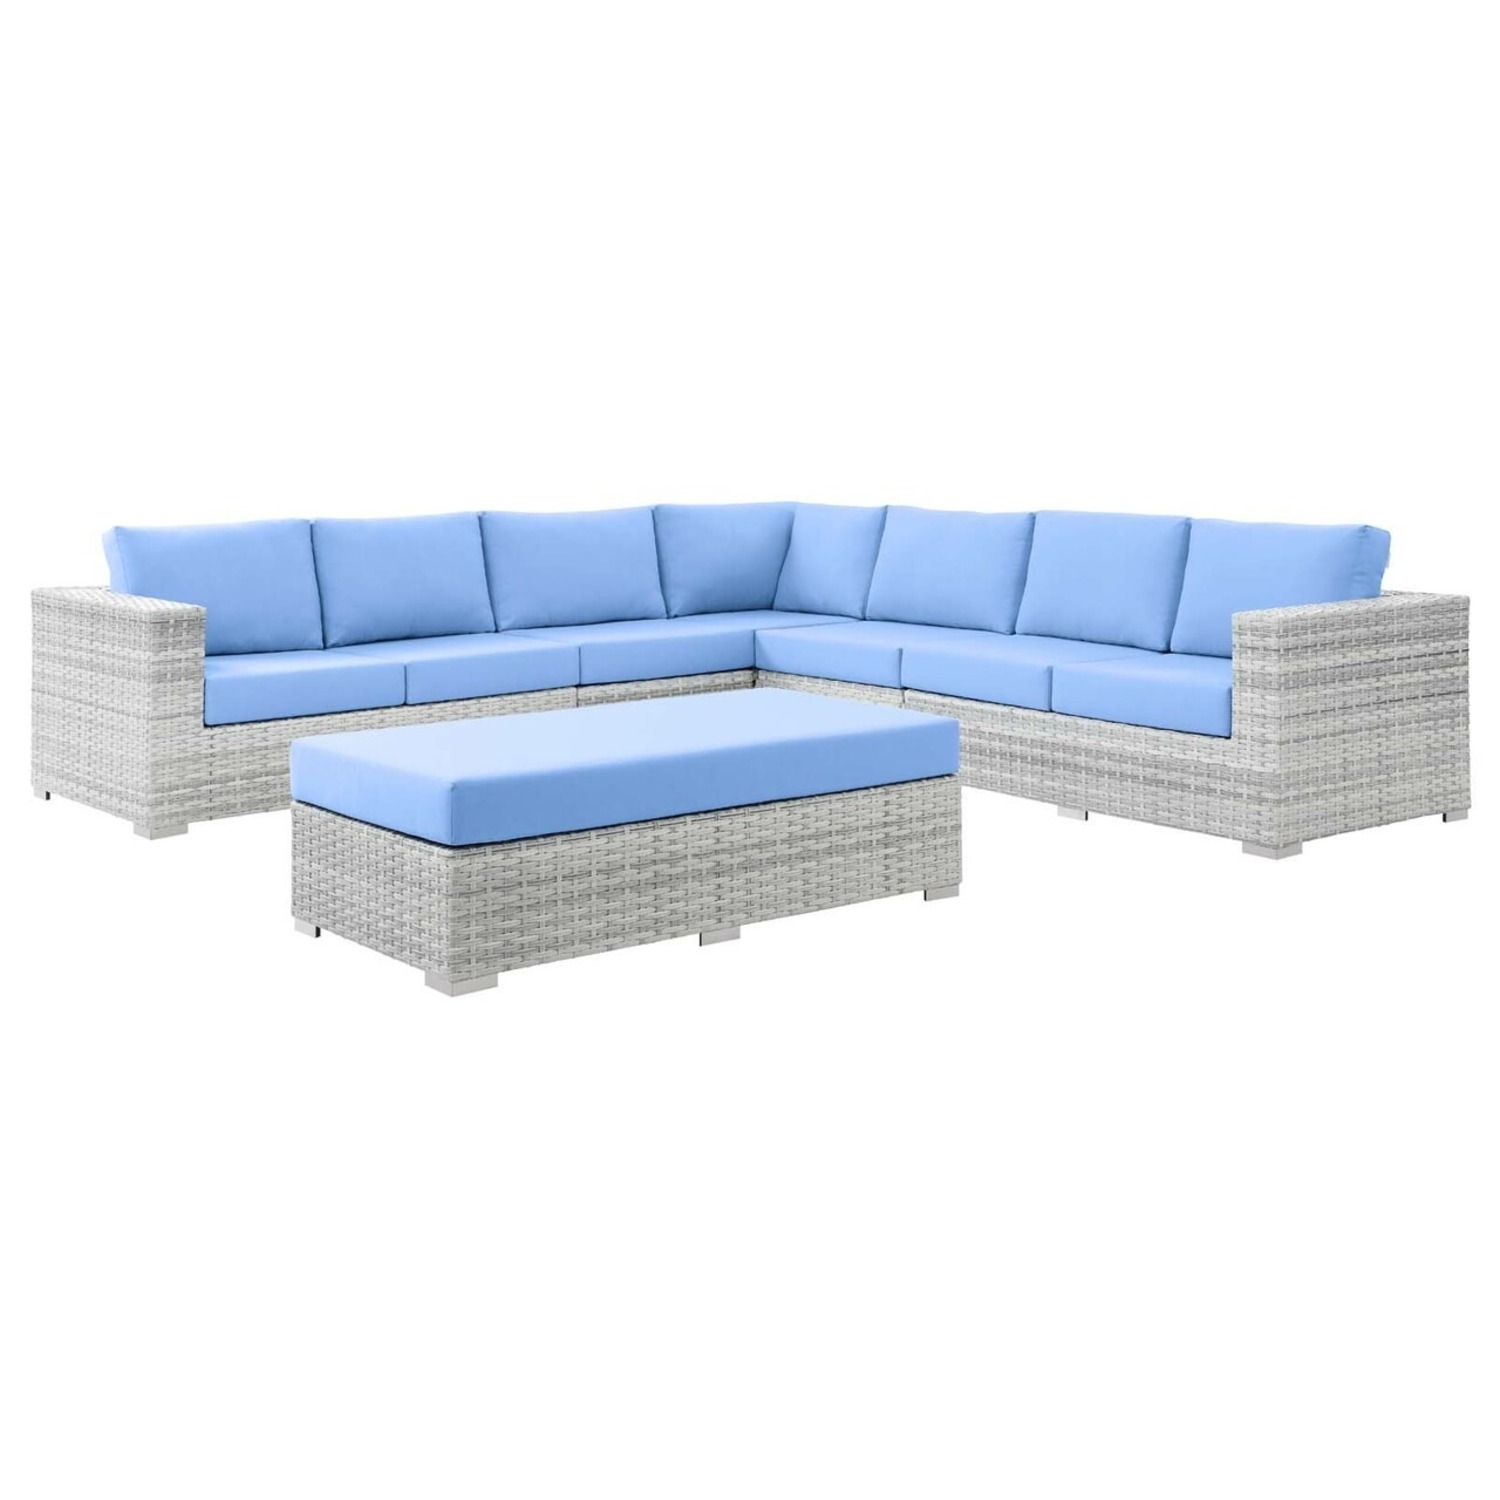 6-Piece Outdoor Patio Sectional In Light Blue Seat - image-0